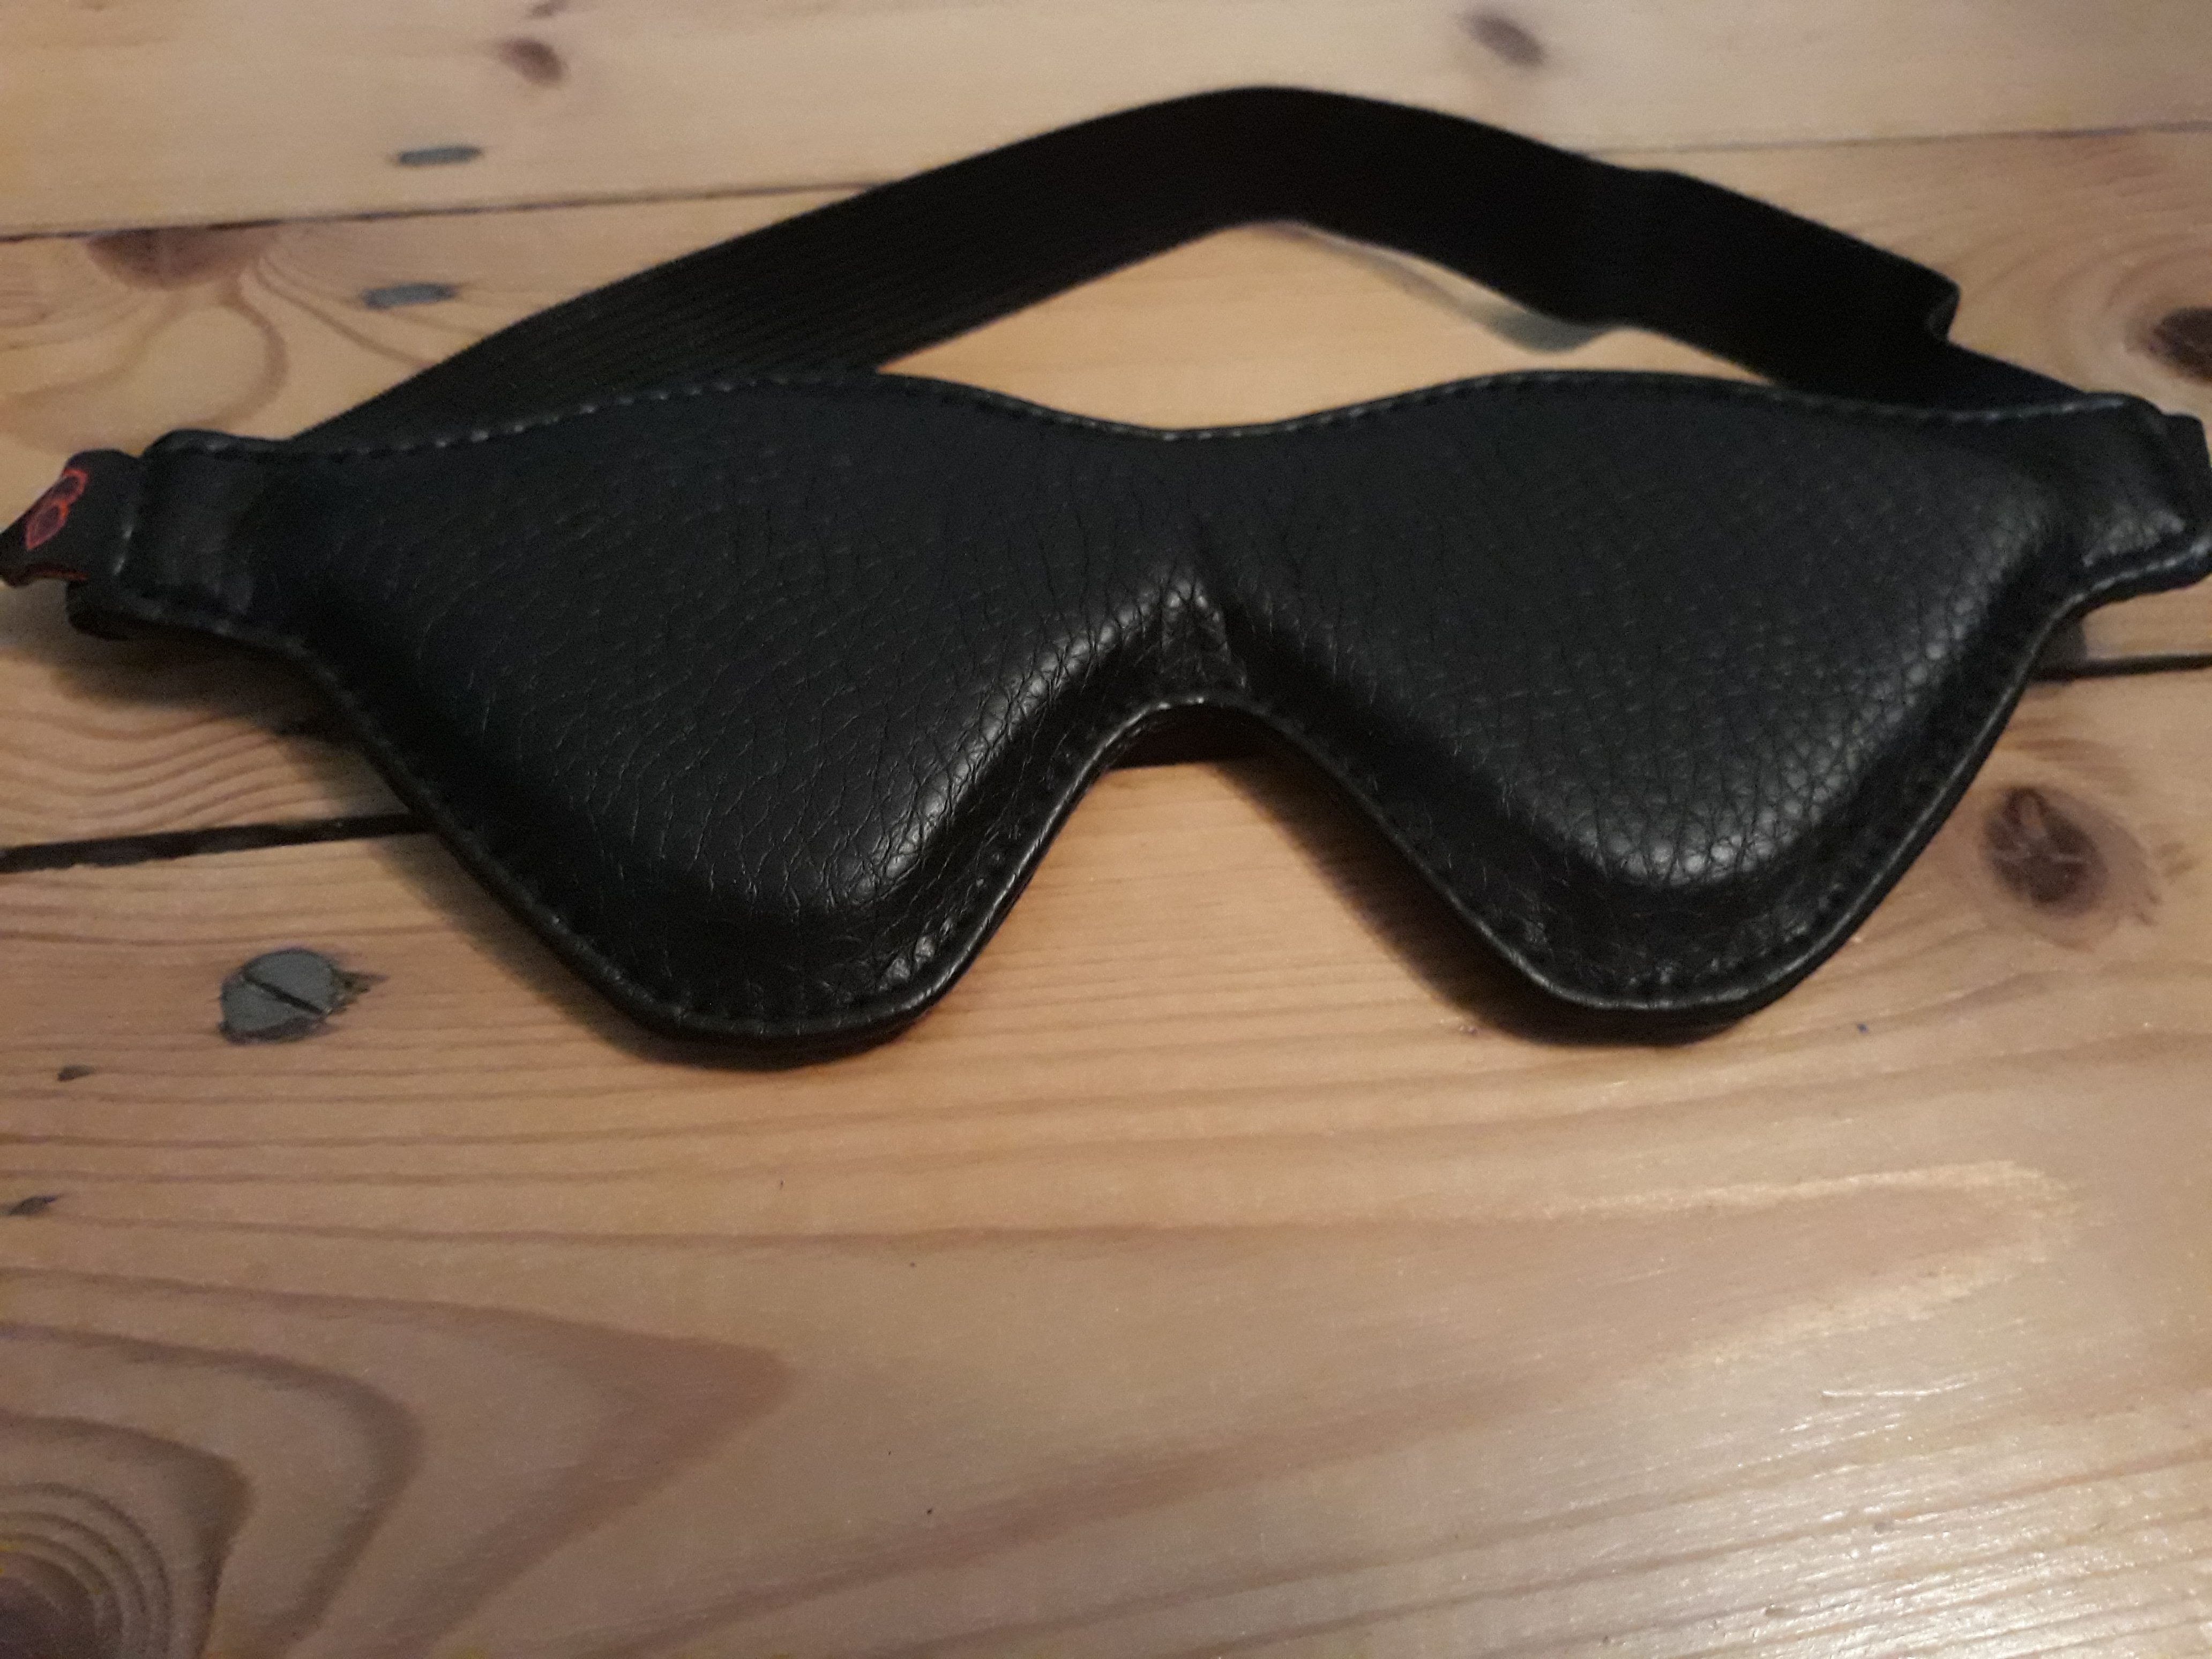 A black blindfold. For a post about the Take Control bondage kit.